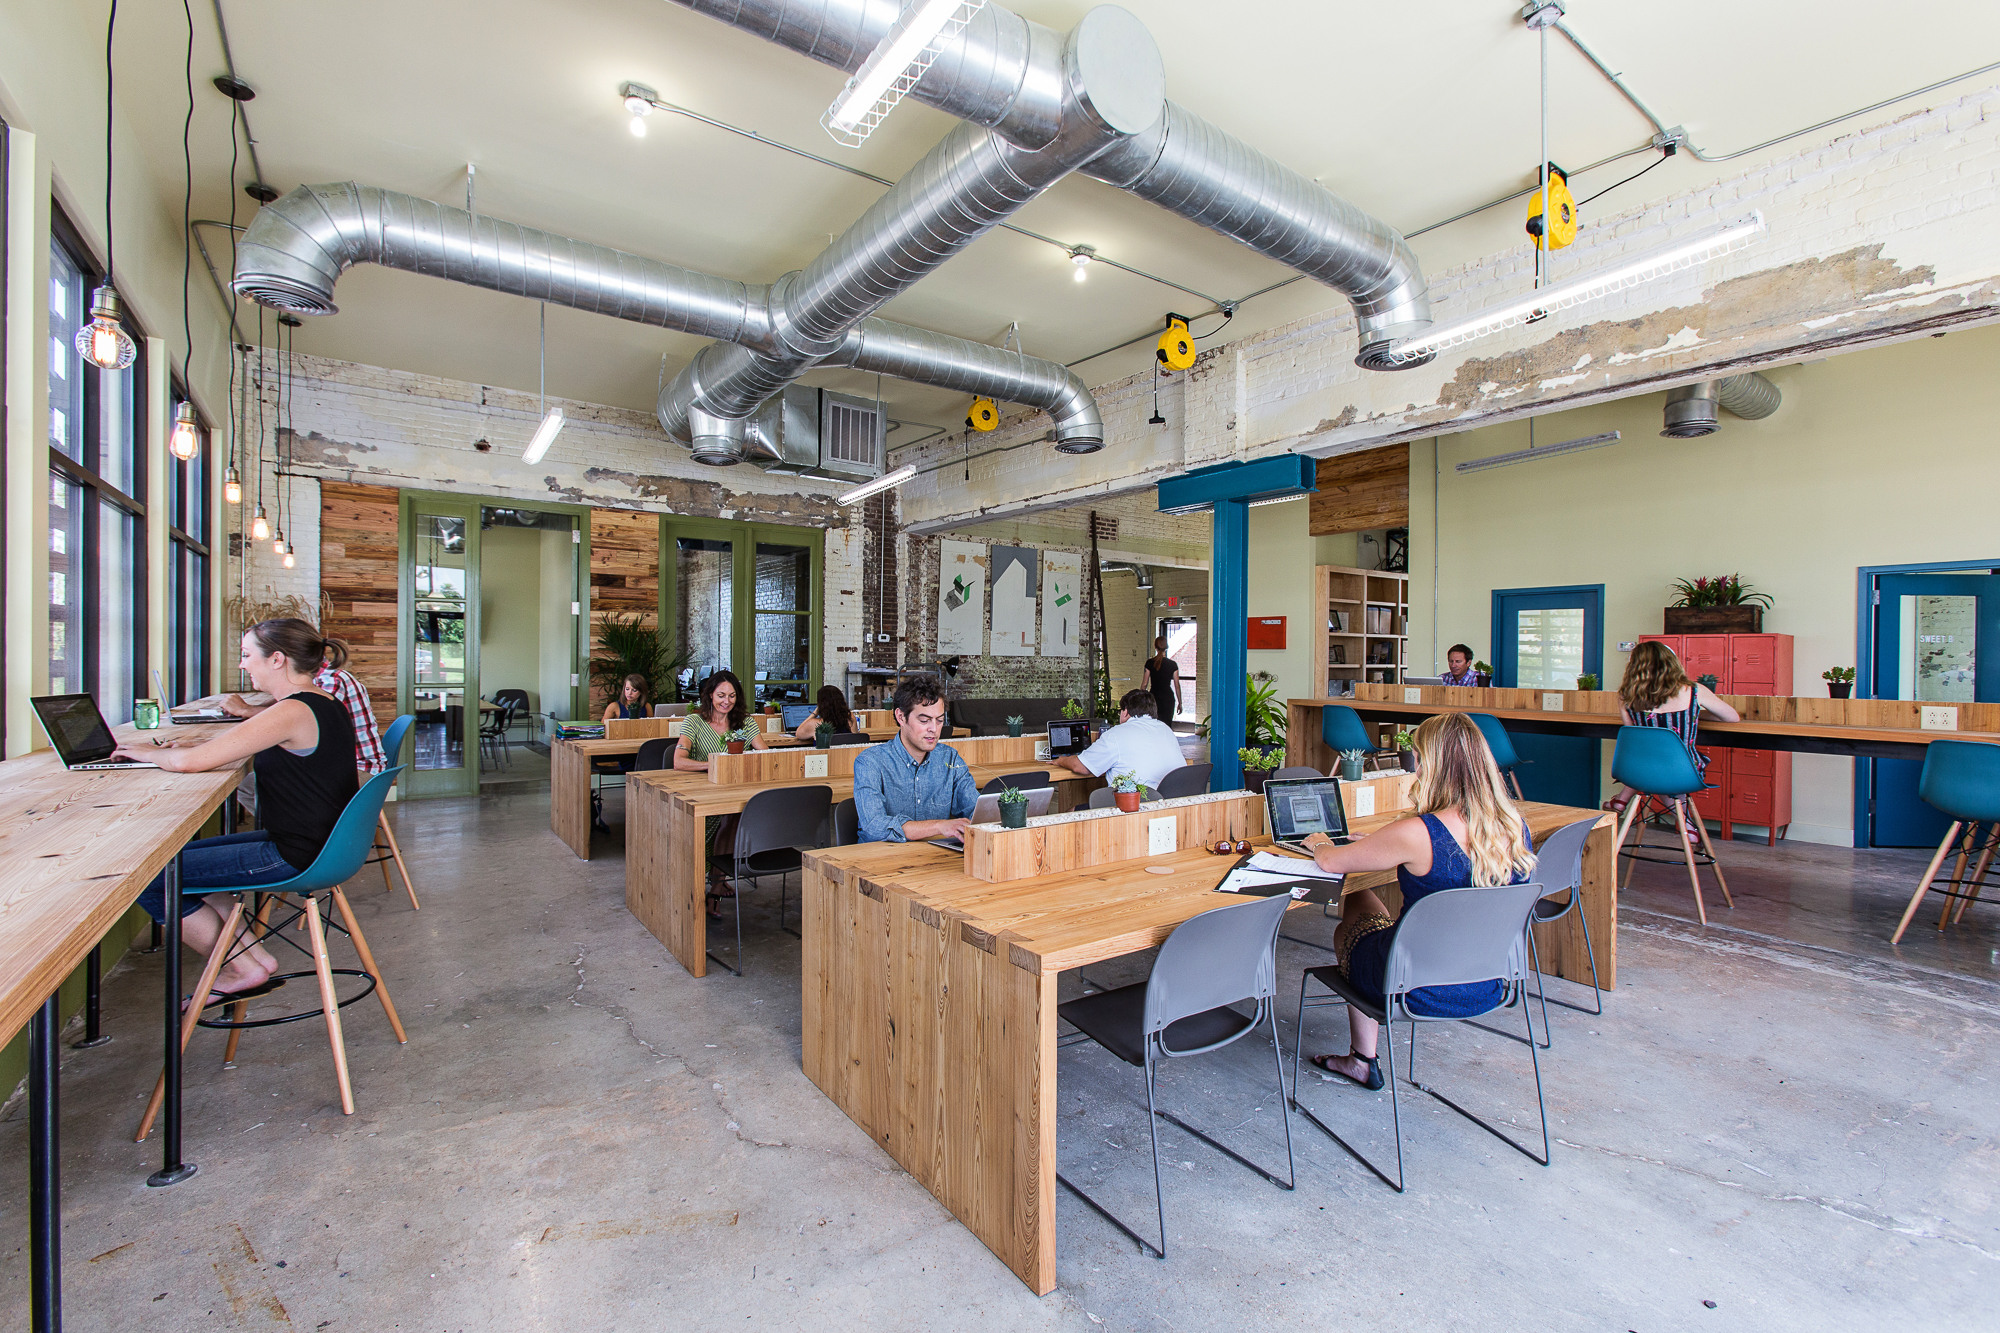 Local Works Companies Thrive From Bustling Cowork Space